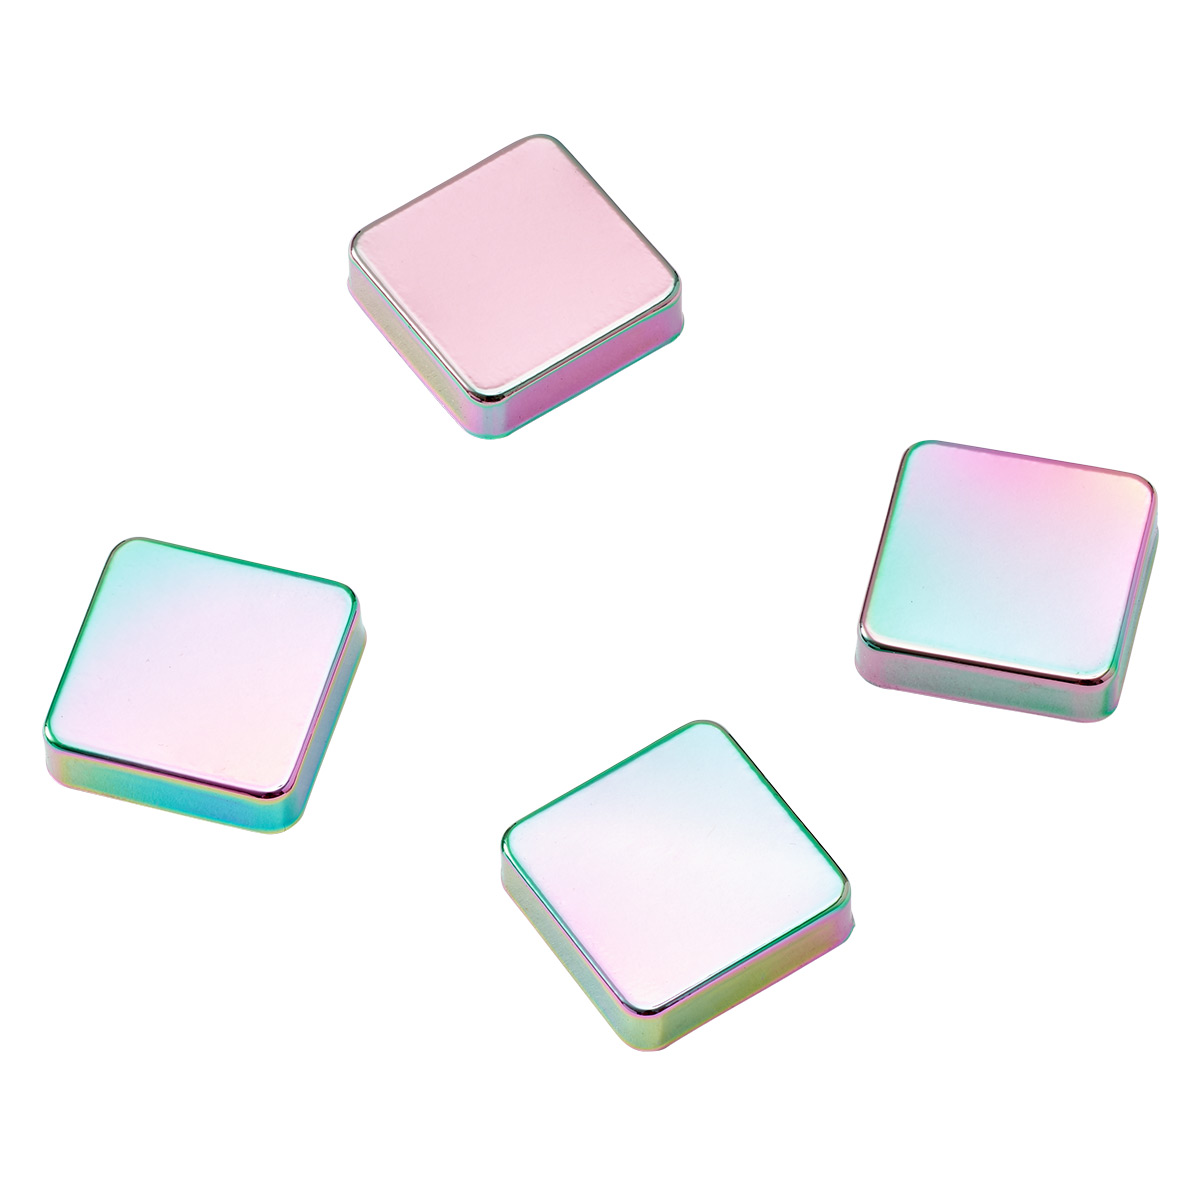 Three by Three Iridescent Snap! Strong Magnets